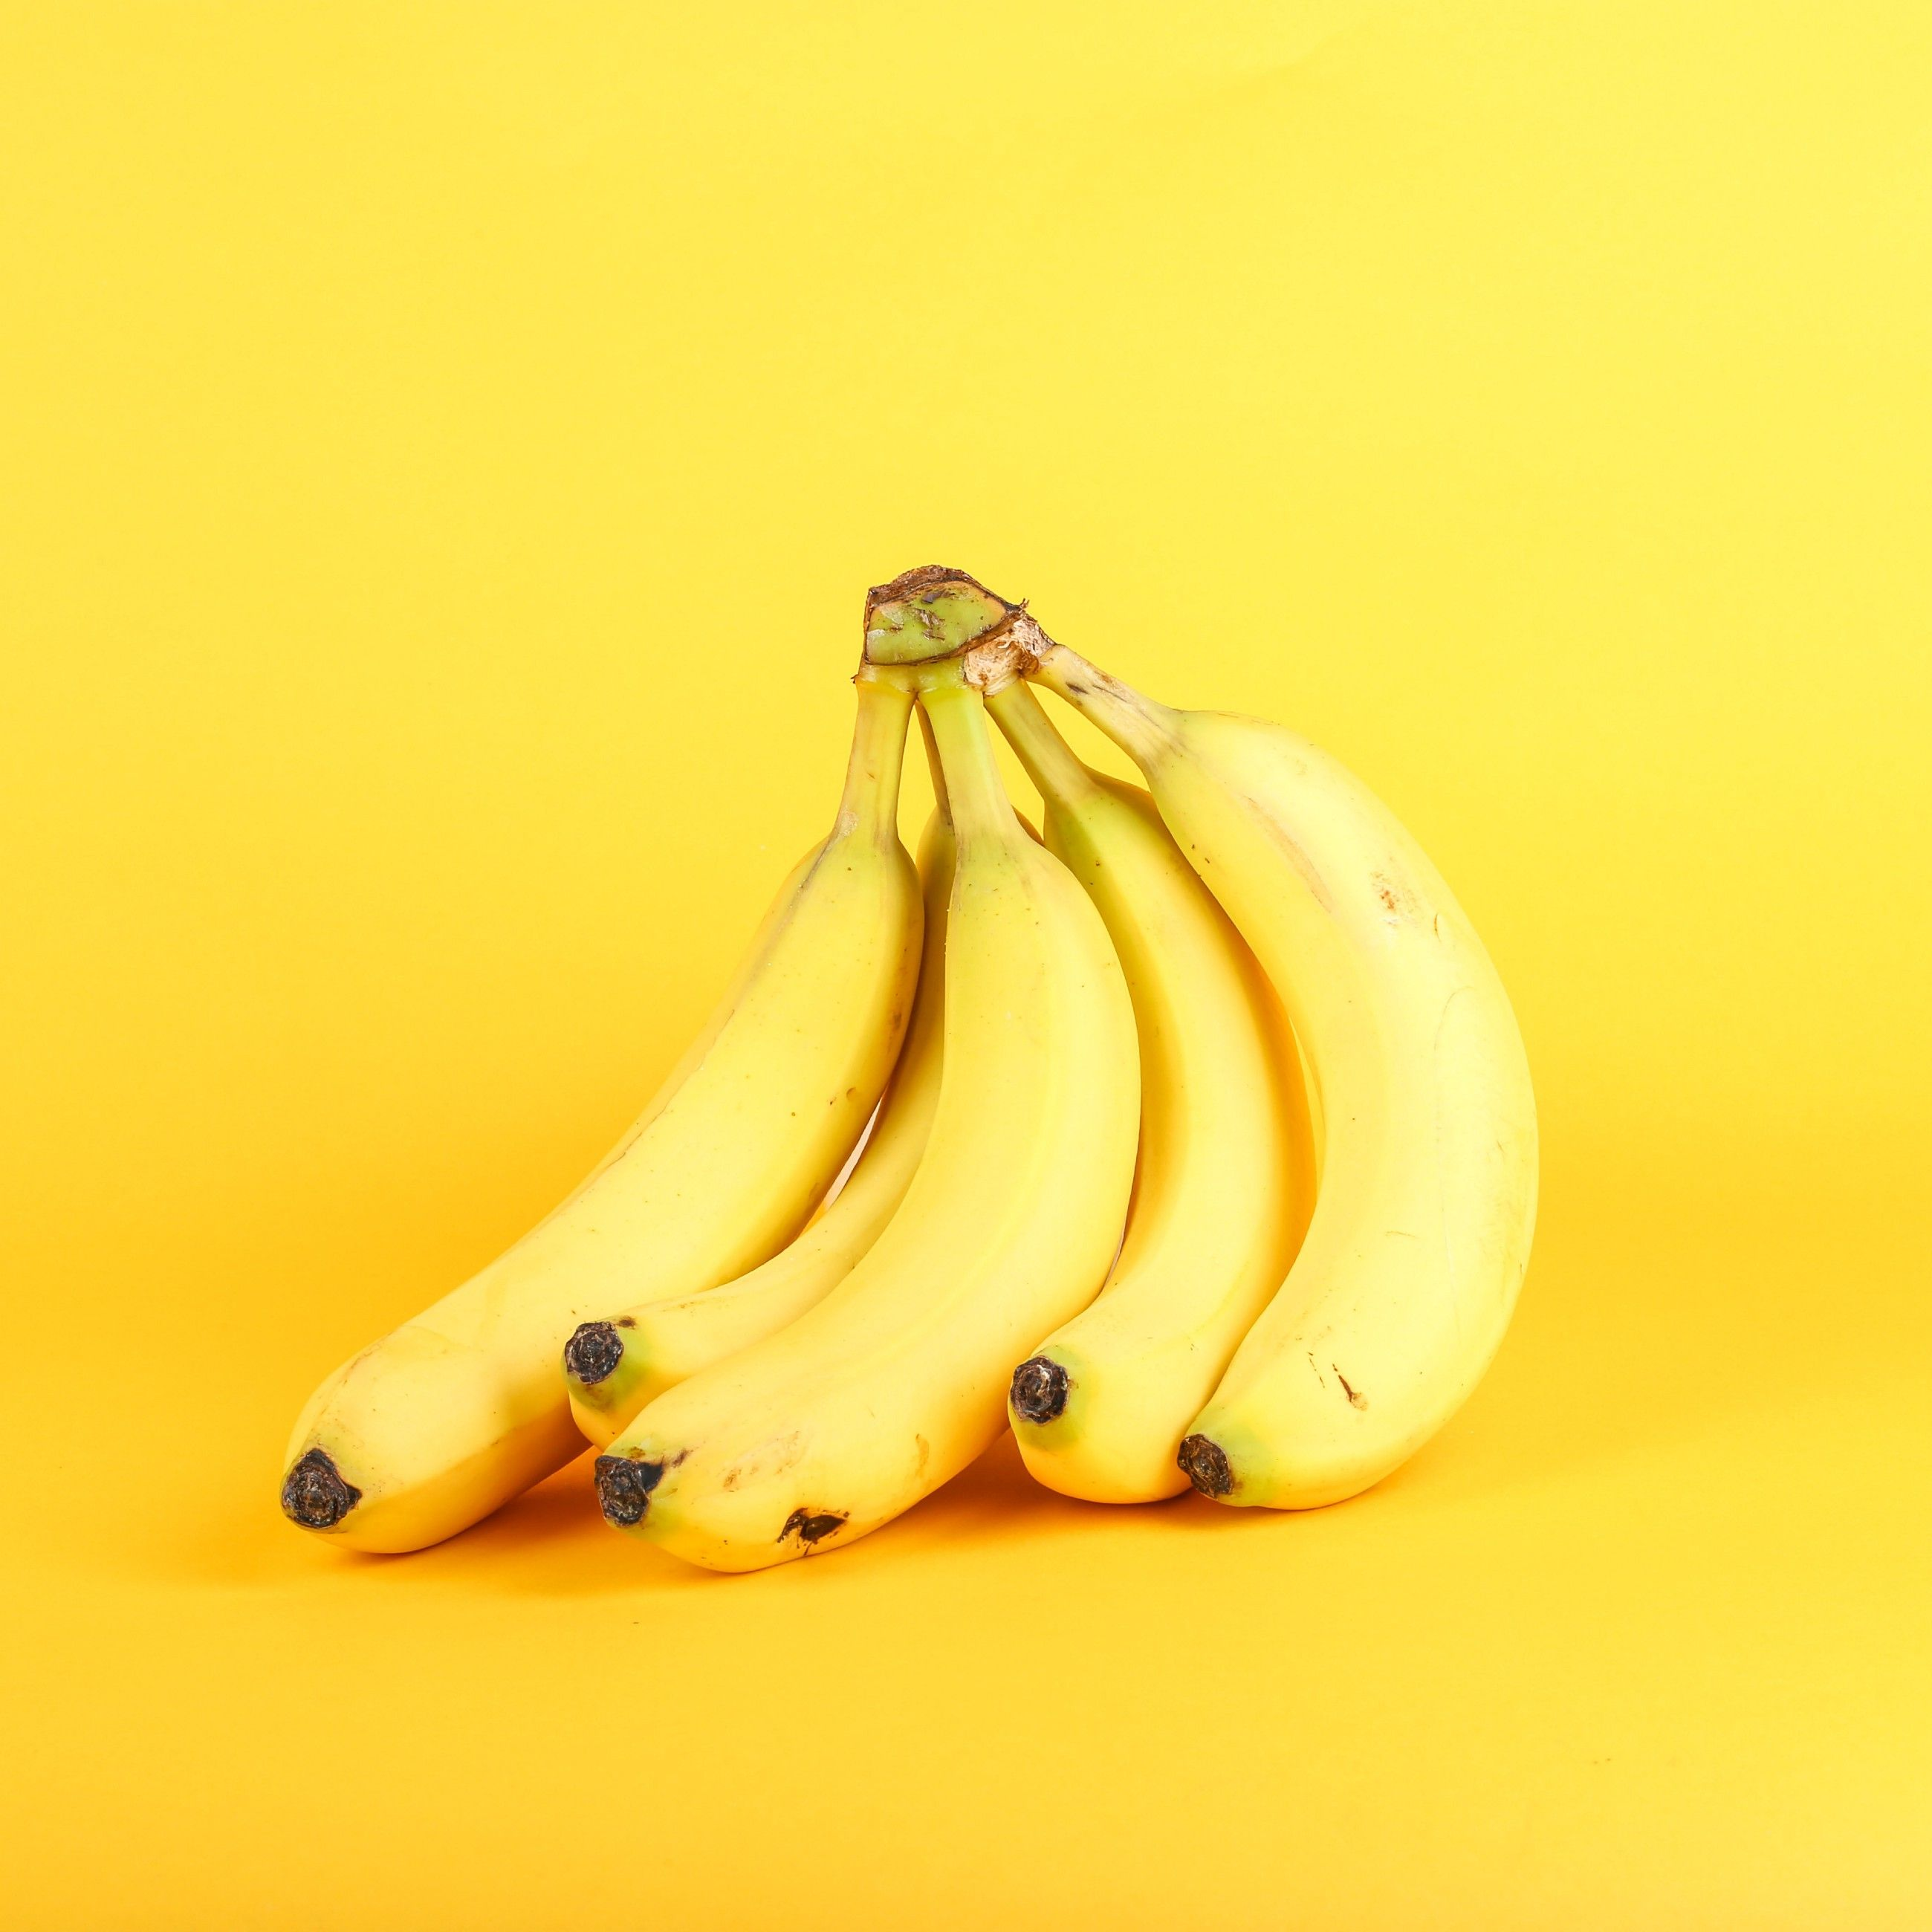 Helpful Playlists For When Things Go Bananas Banana Benefits